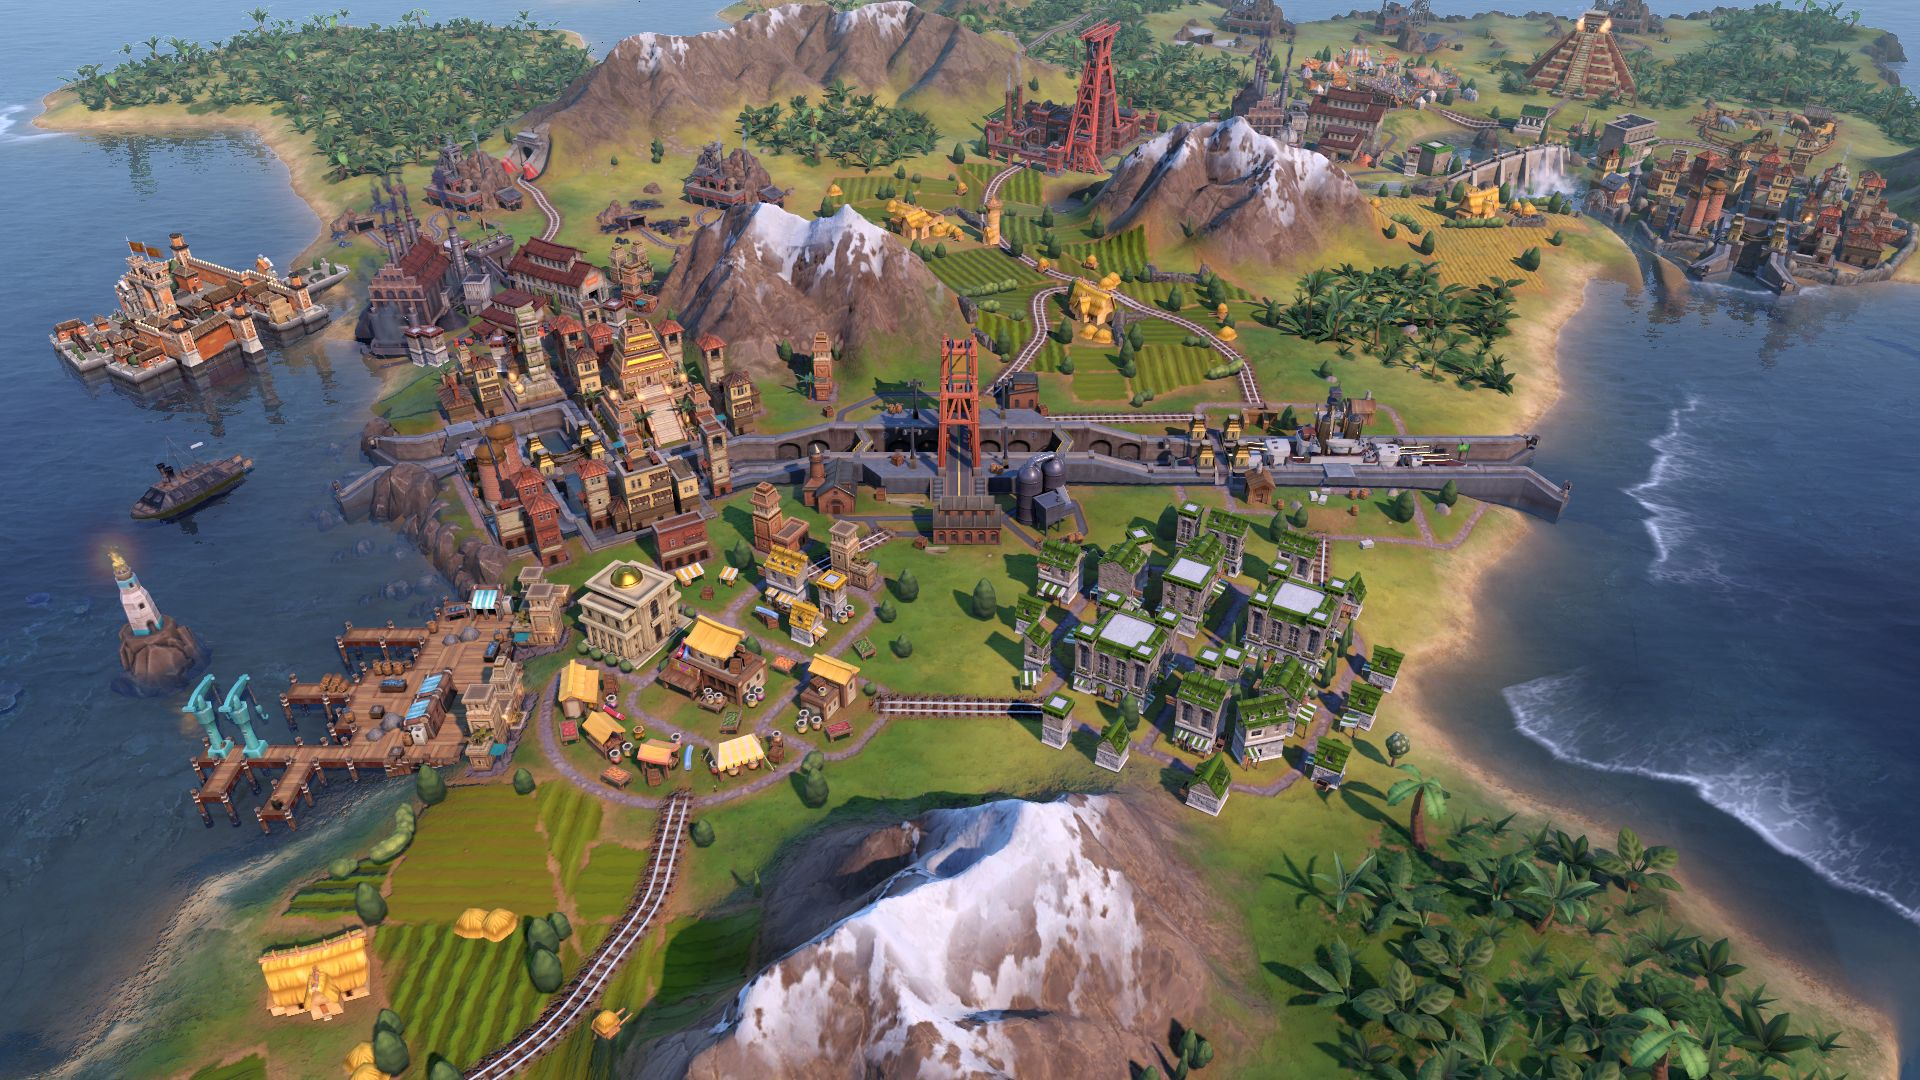 This Civilization 6 mod gives you more options for industrial zones